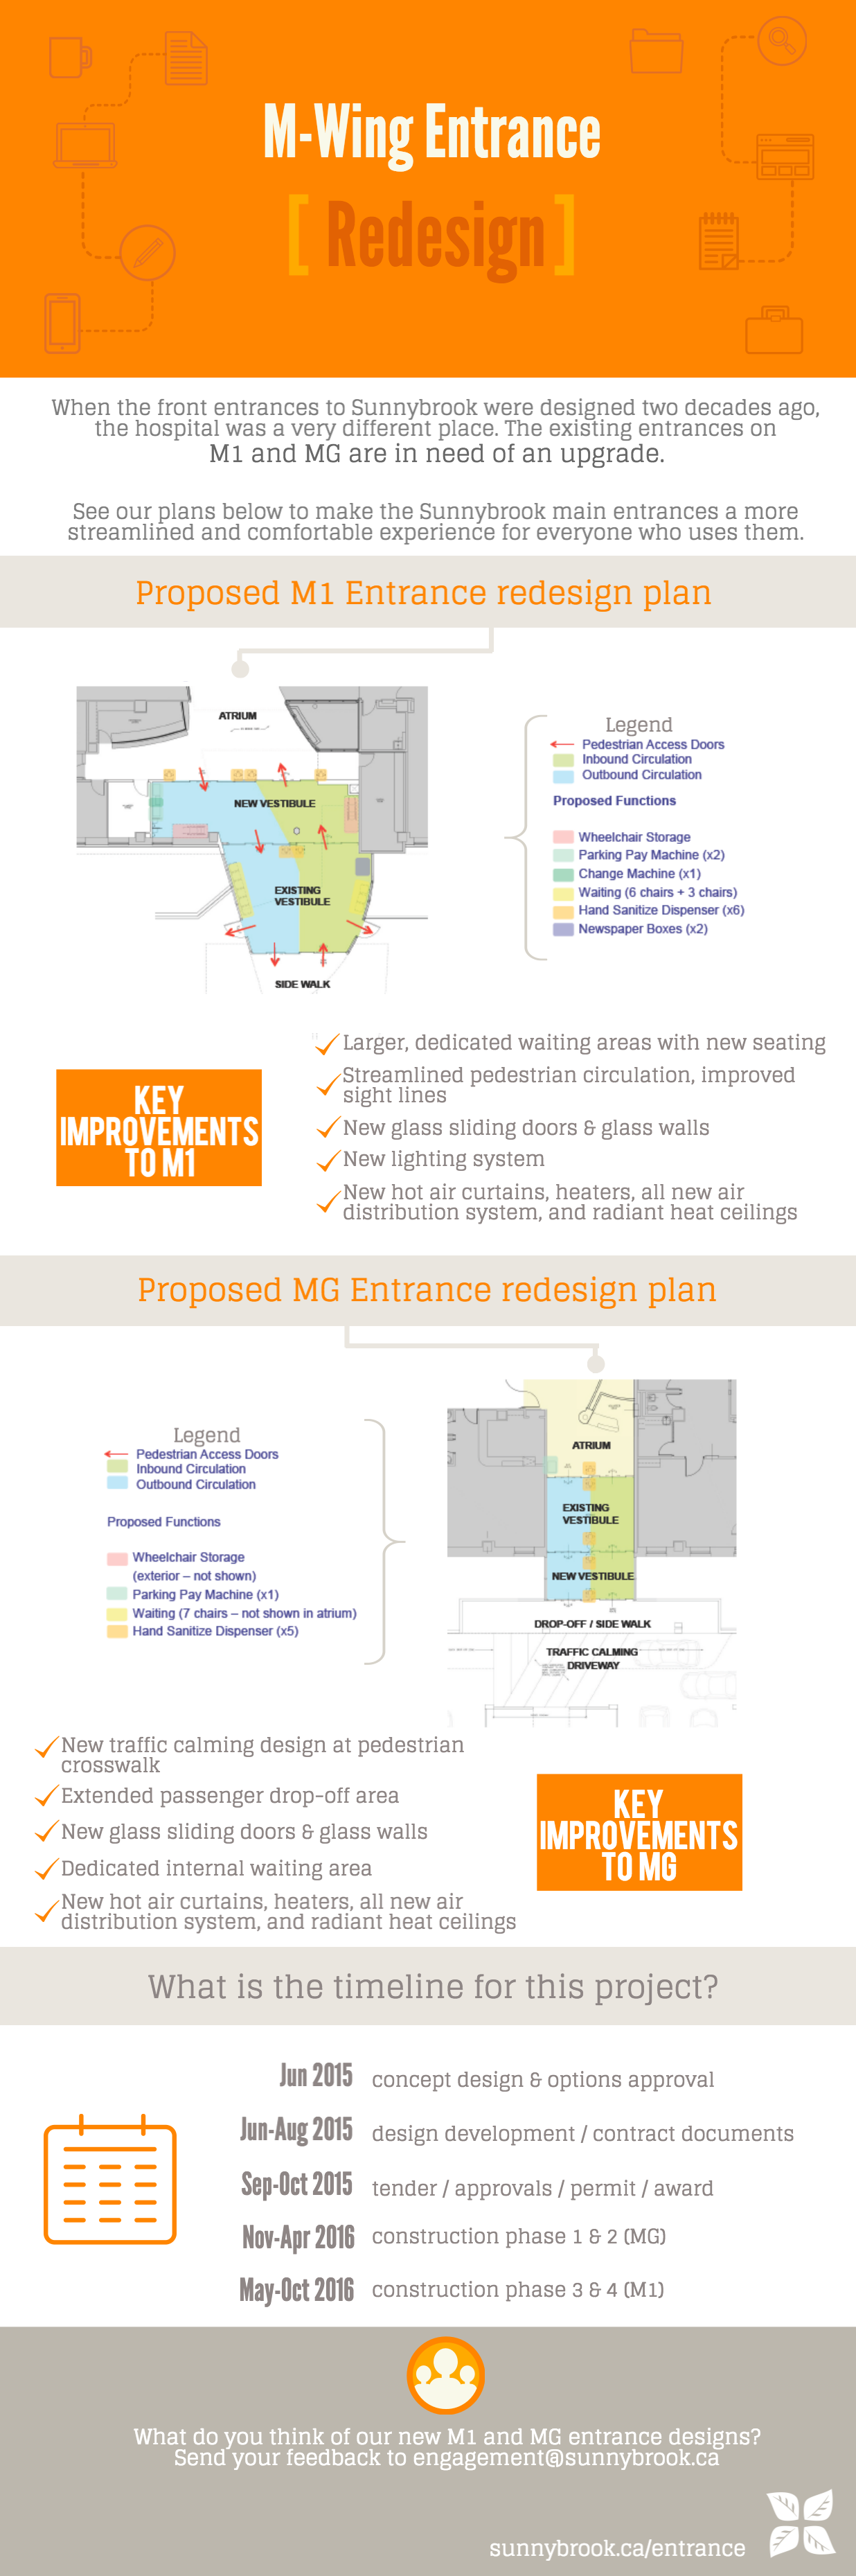 M-Wing entrance redesign infographic - Accessible text follows